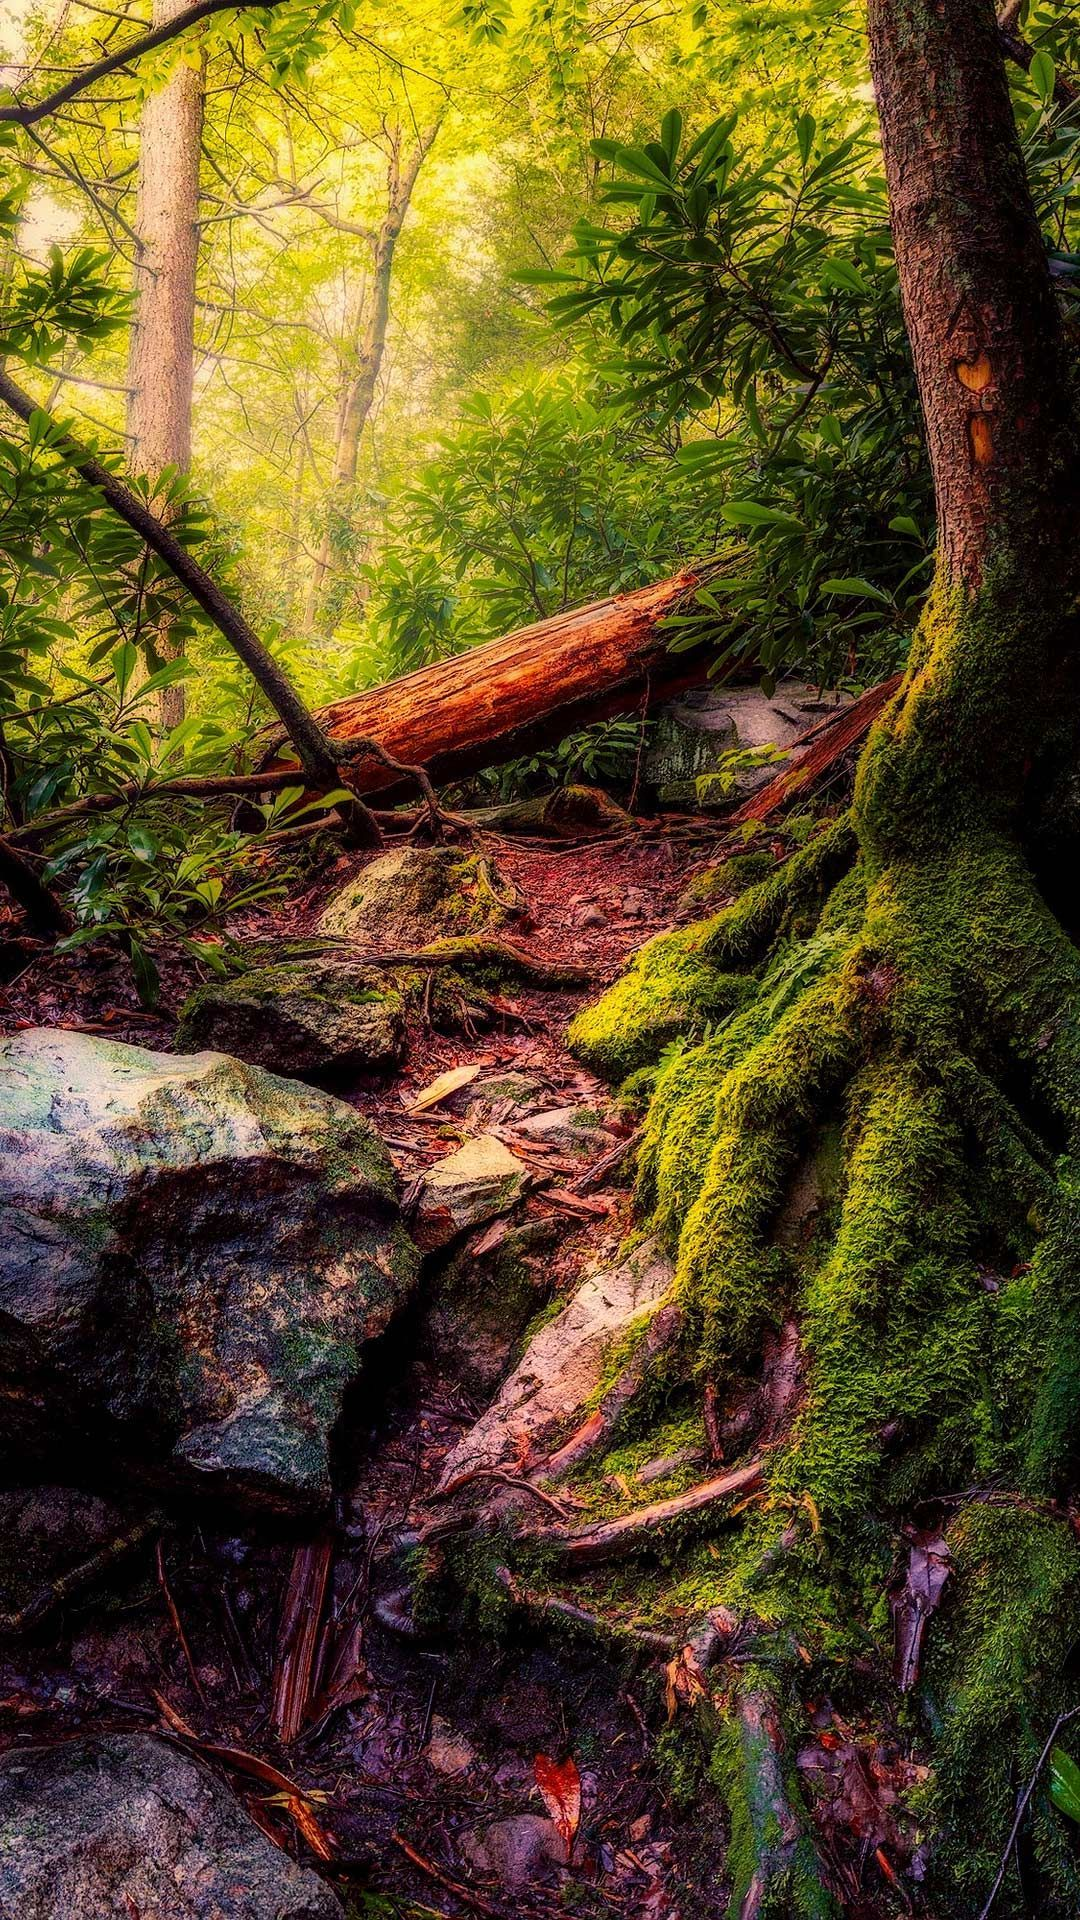 20 Forest Wallpaper Phone Backgrounds Hd Image For Free Download Cutewallpaperbackgrounds Wonderful Forest Wallpaper Green Nature Wallpaper Phone Backgrounds Forest nature phone wallpaper